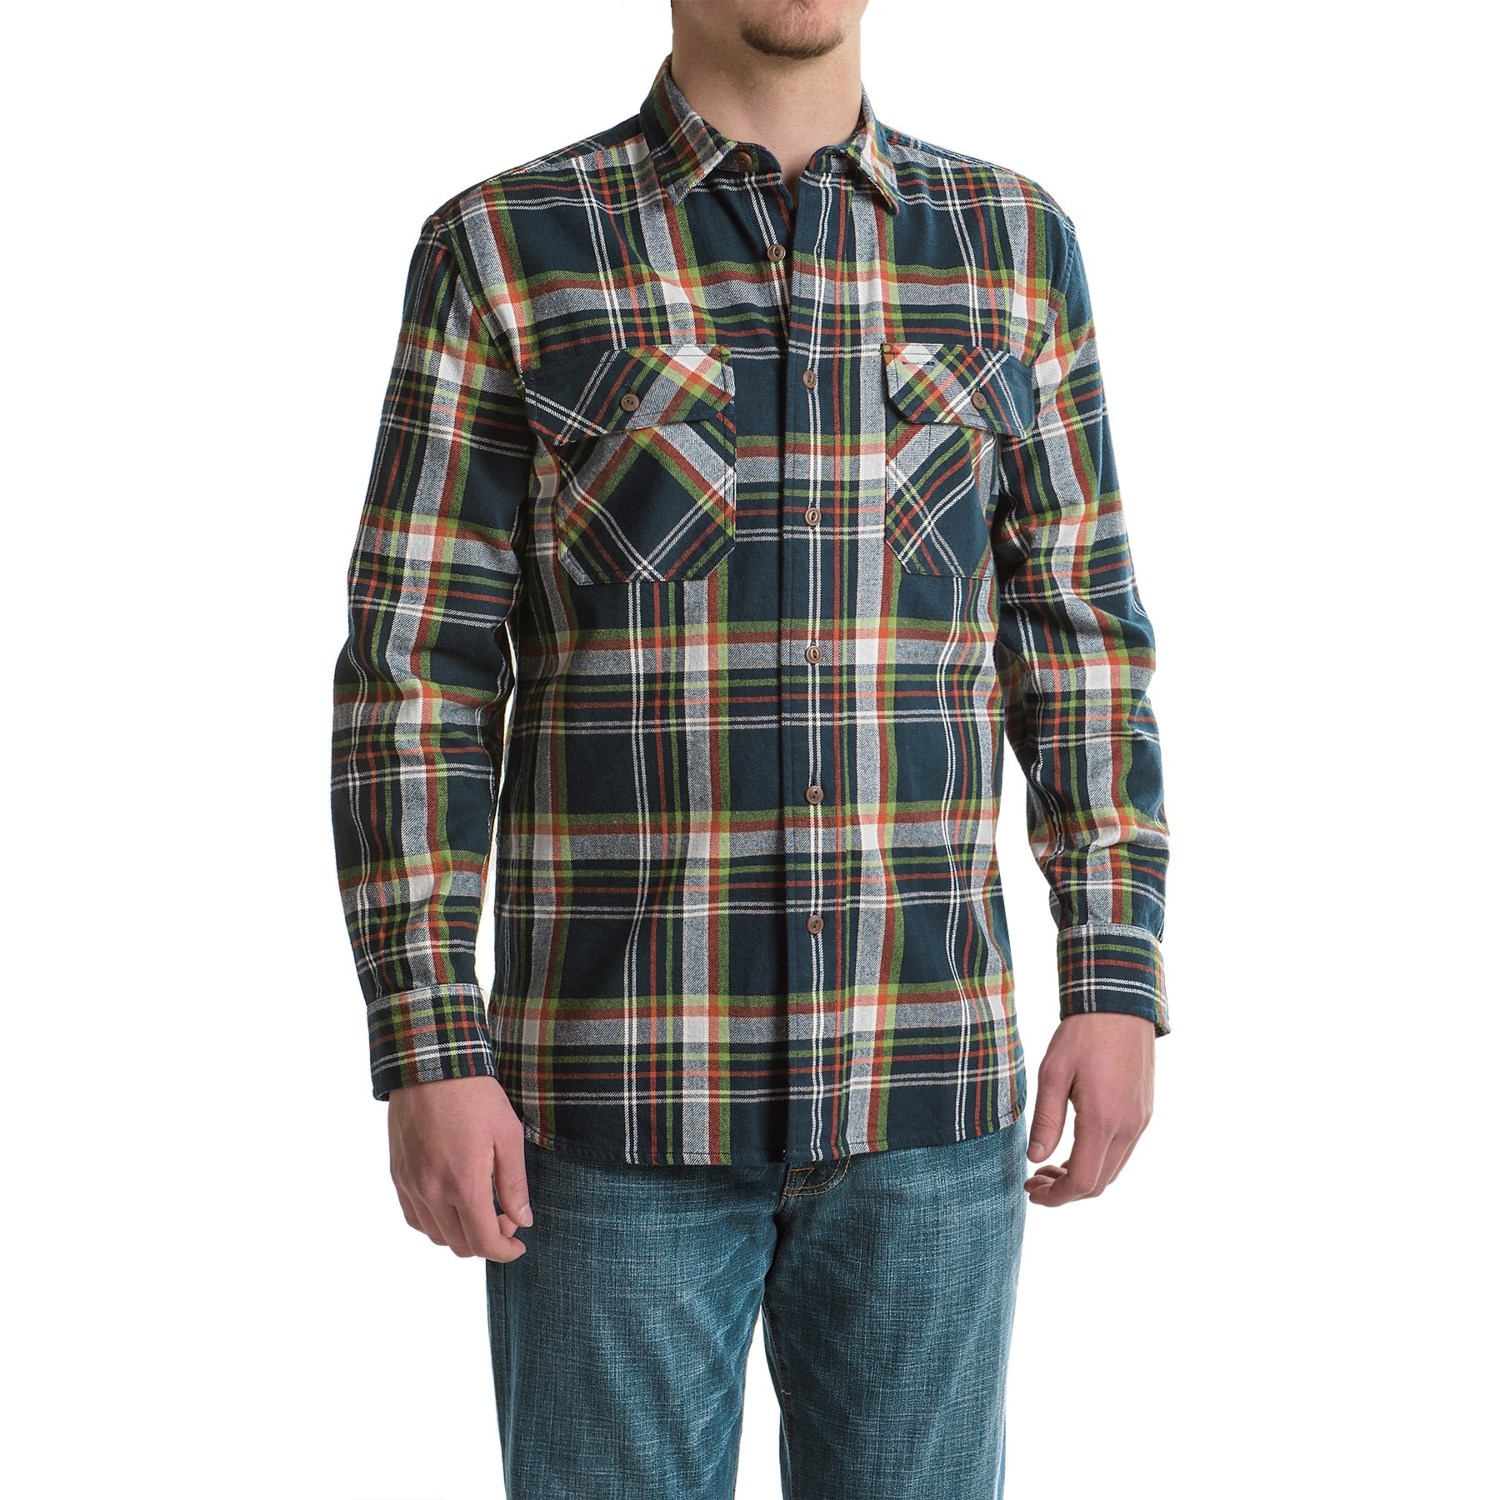 Looking for merino wool shirts? Pendleton's mens wool clothing is woven in USA and crafted to last. Shop mens wool clothes now. FREE SHIPPING ON $+ ORDERS! USE CODE FALL18 FITTED LISTER FLANNEL SHIRT $ MOONRISE OUTDOOR SHIRT $ THOMAS KAY OVERSHIRT $